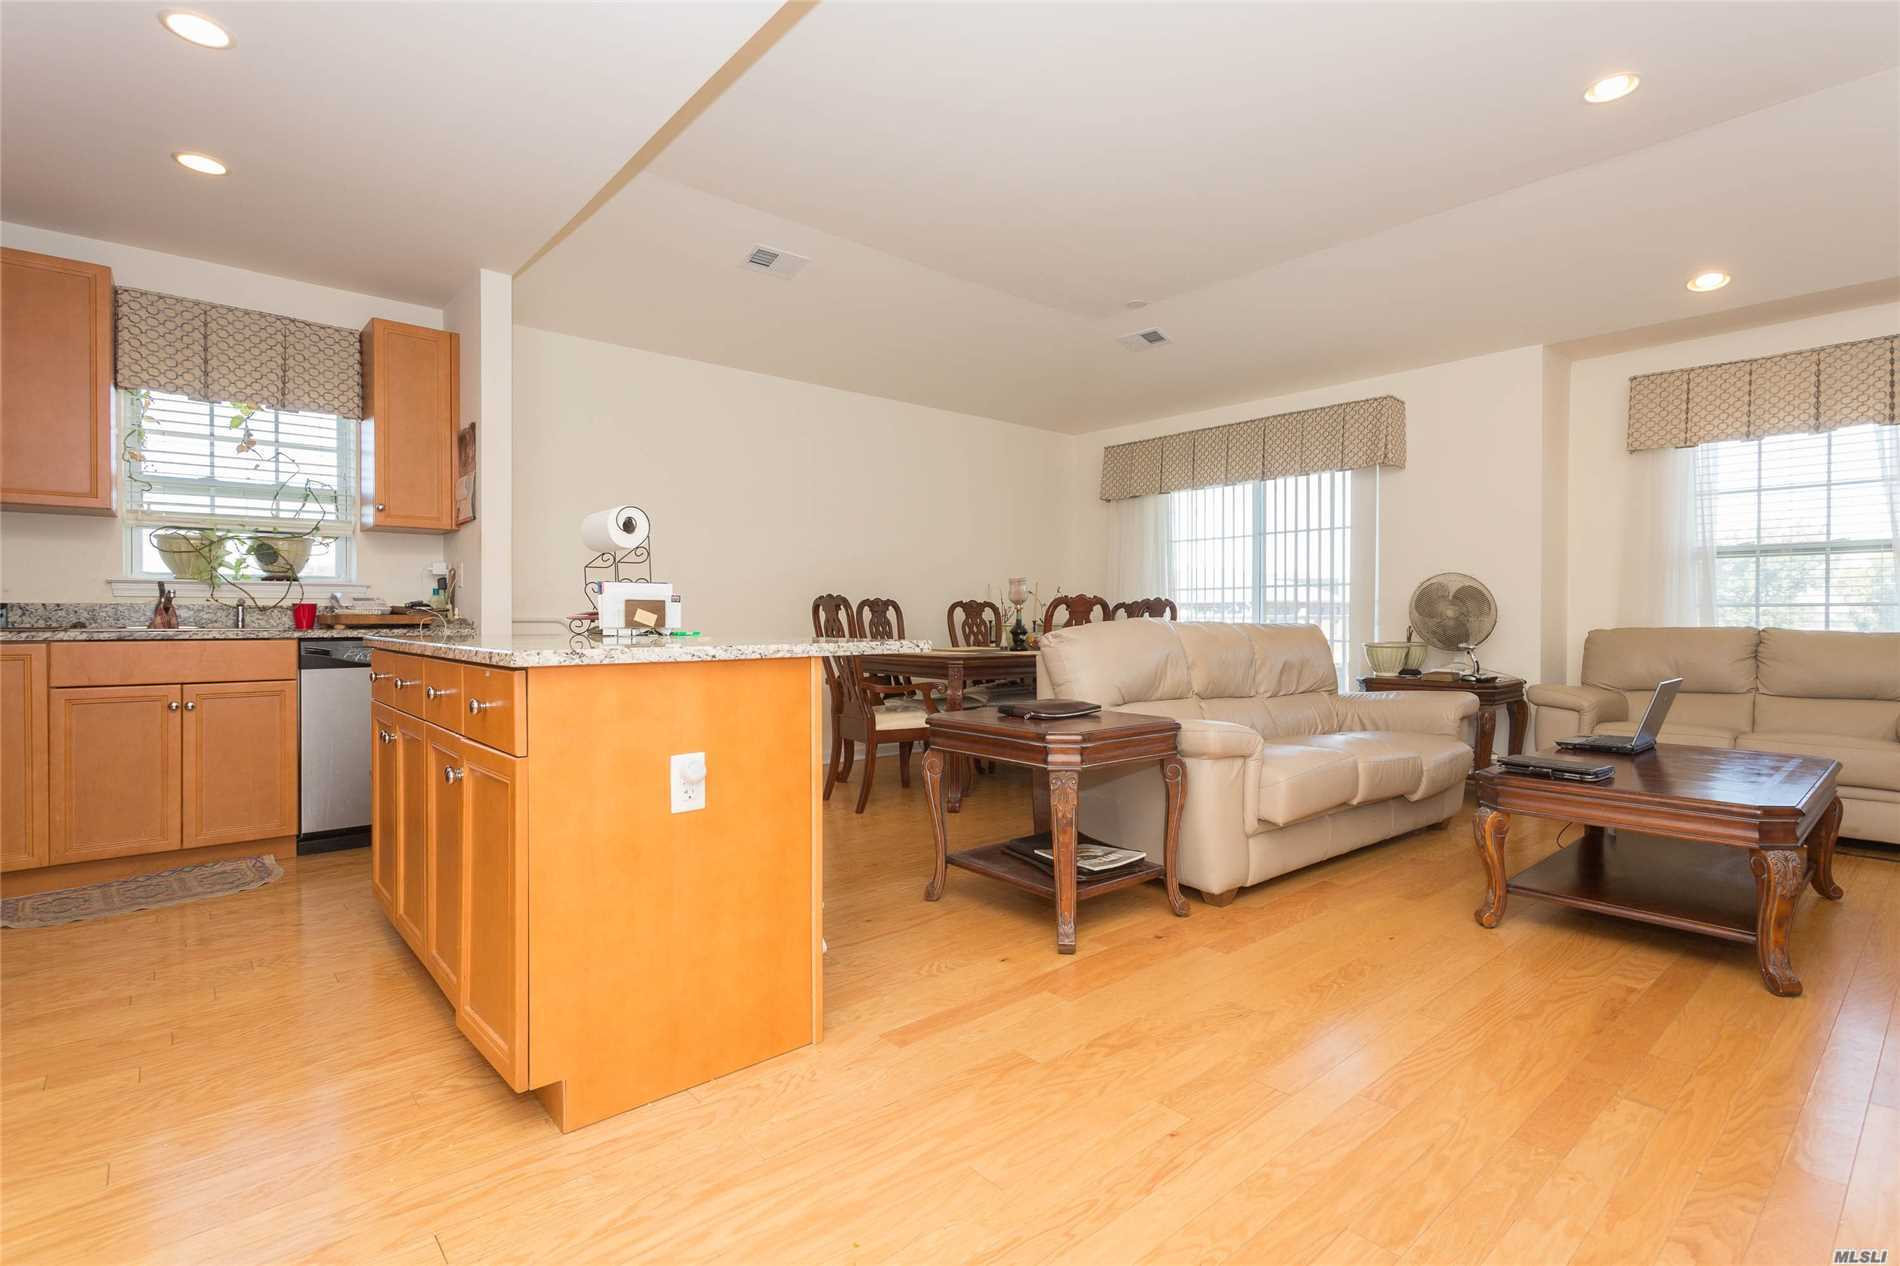 Brick, Top Floor, Spacious 2 Bedroom Condo. Approx. End Unit, 1278 Sqft. 2 Bath & Terrace. Possible To Convert To 3 Brs. Views Of River, Promenade, Waterfront Park & Whitestone Bridge. Energy Star Rated. High Ceilings, Hdwd Flrs., Kit W/ Granite Counter Tops, Cac. Quiet Nbhd. Access To 6 Acre Waterfront Park. Pvt Setting, Landscaped Grounds & N/Hood Video Surveillance System. 2 Parking Spcs Incl. 421 A Tax Abatement Discount Reduces Taxes To $686. Near Schools, Transportation & Macneil Park.